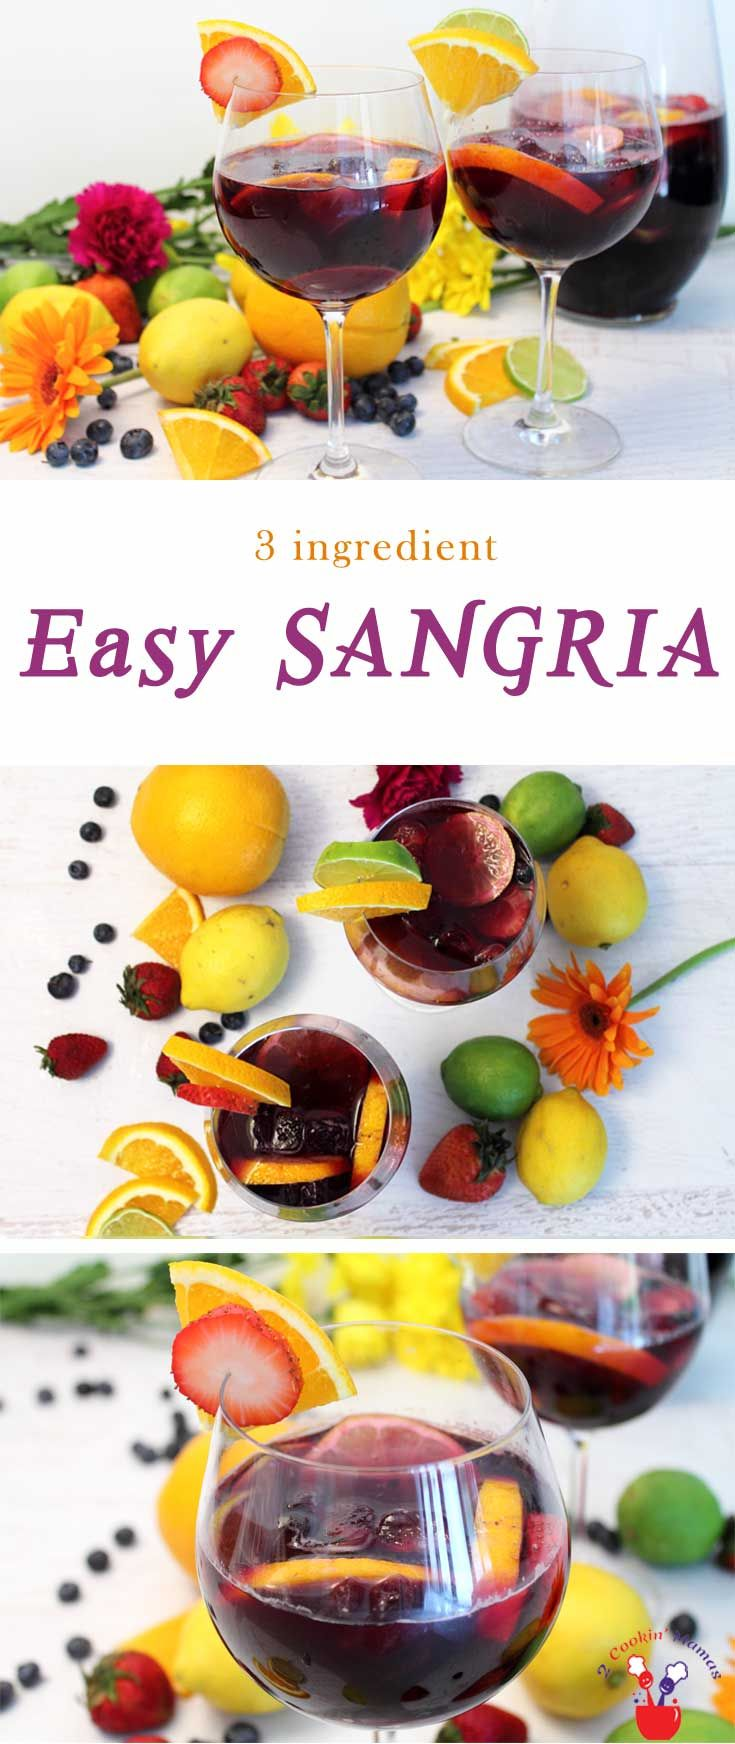 Our easy sangria has just 3 ingredients. An inexpensive wine, Sprite & sliced fruit are all that's needed to make this favorite summer cocktail. via @2CookinMamas